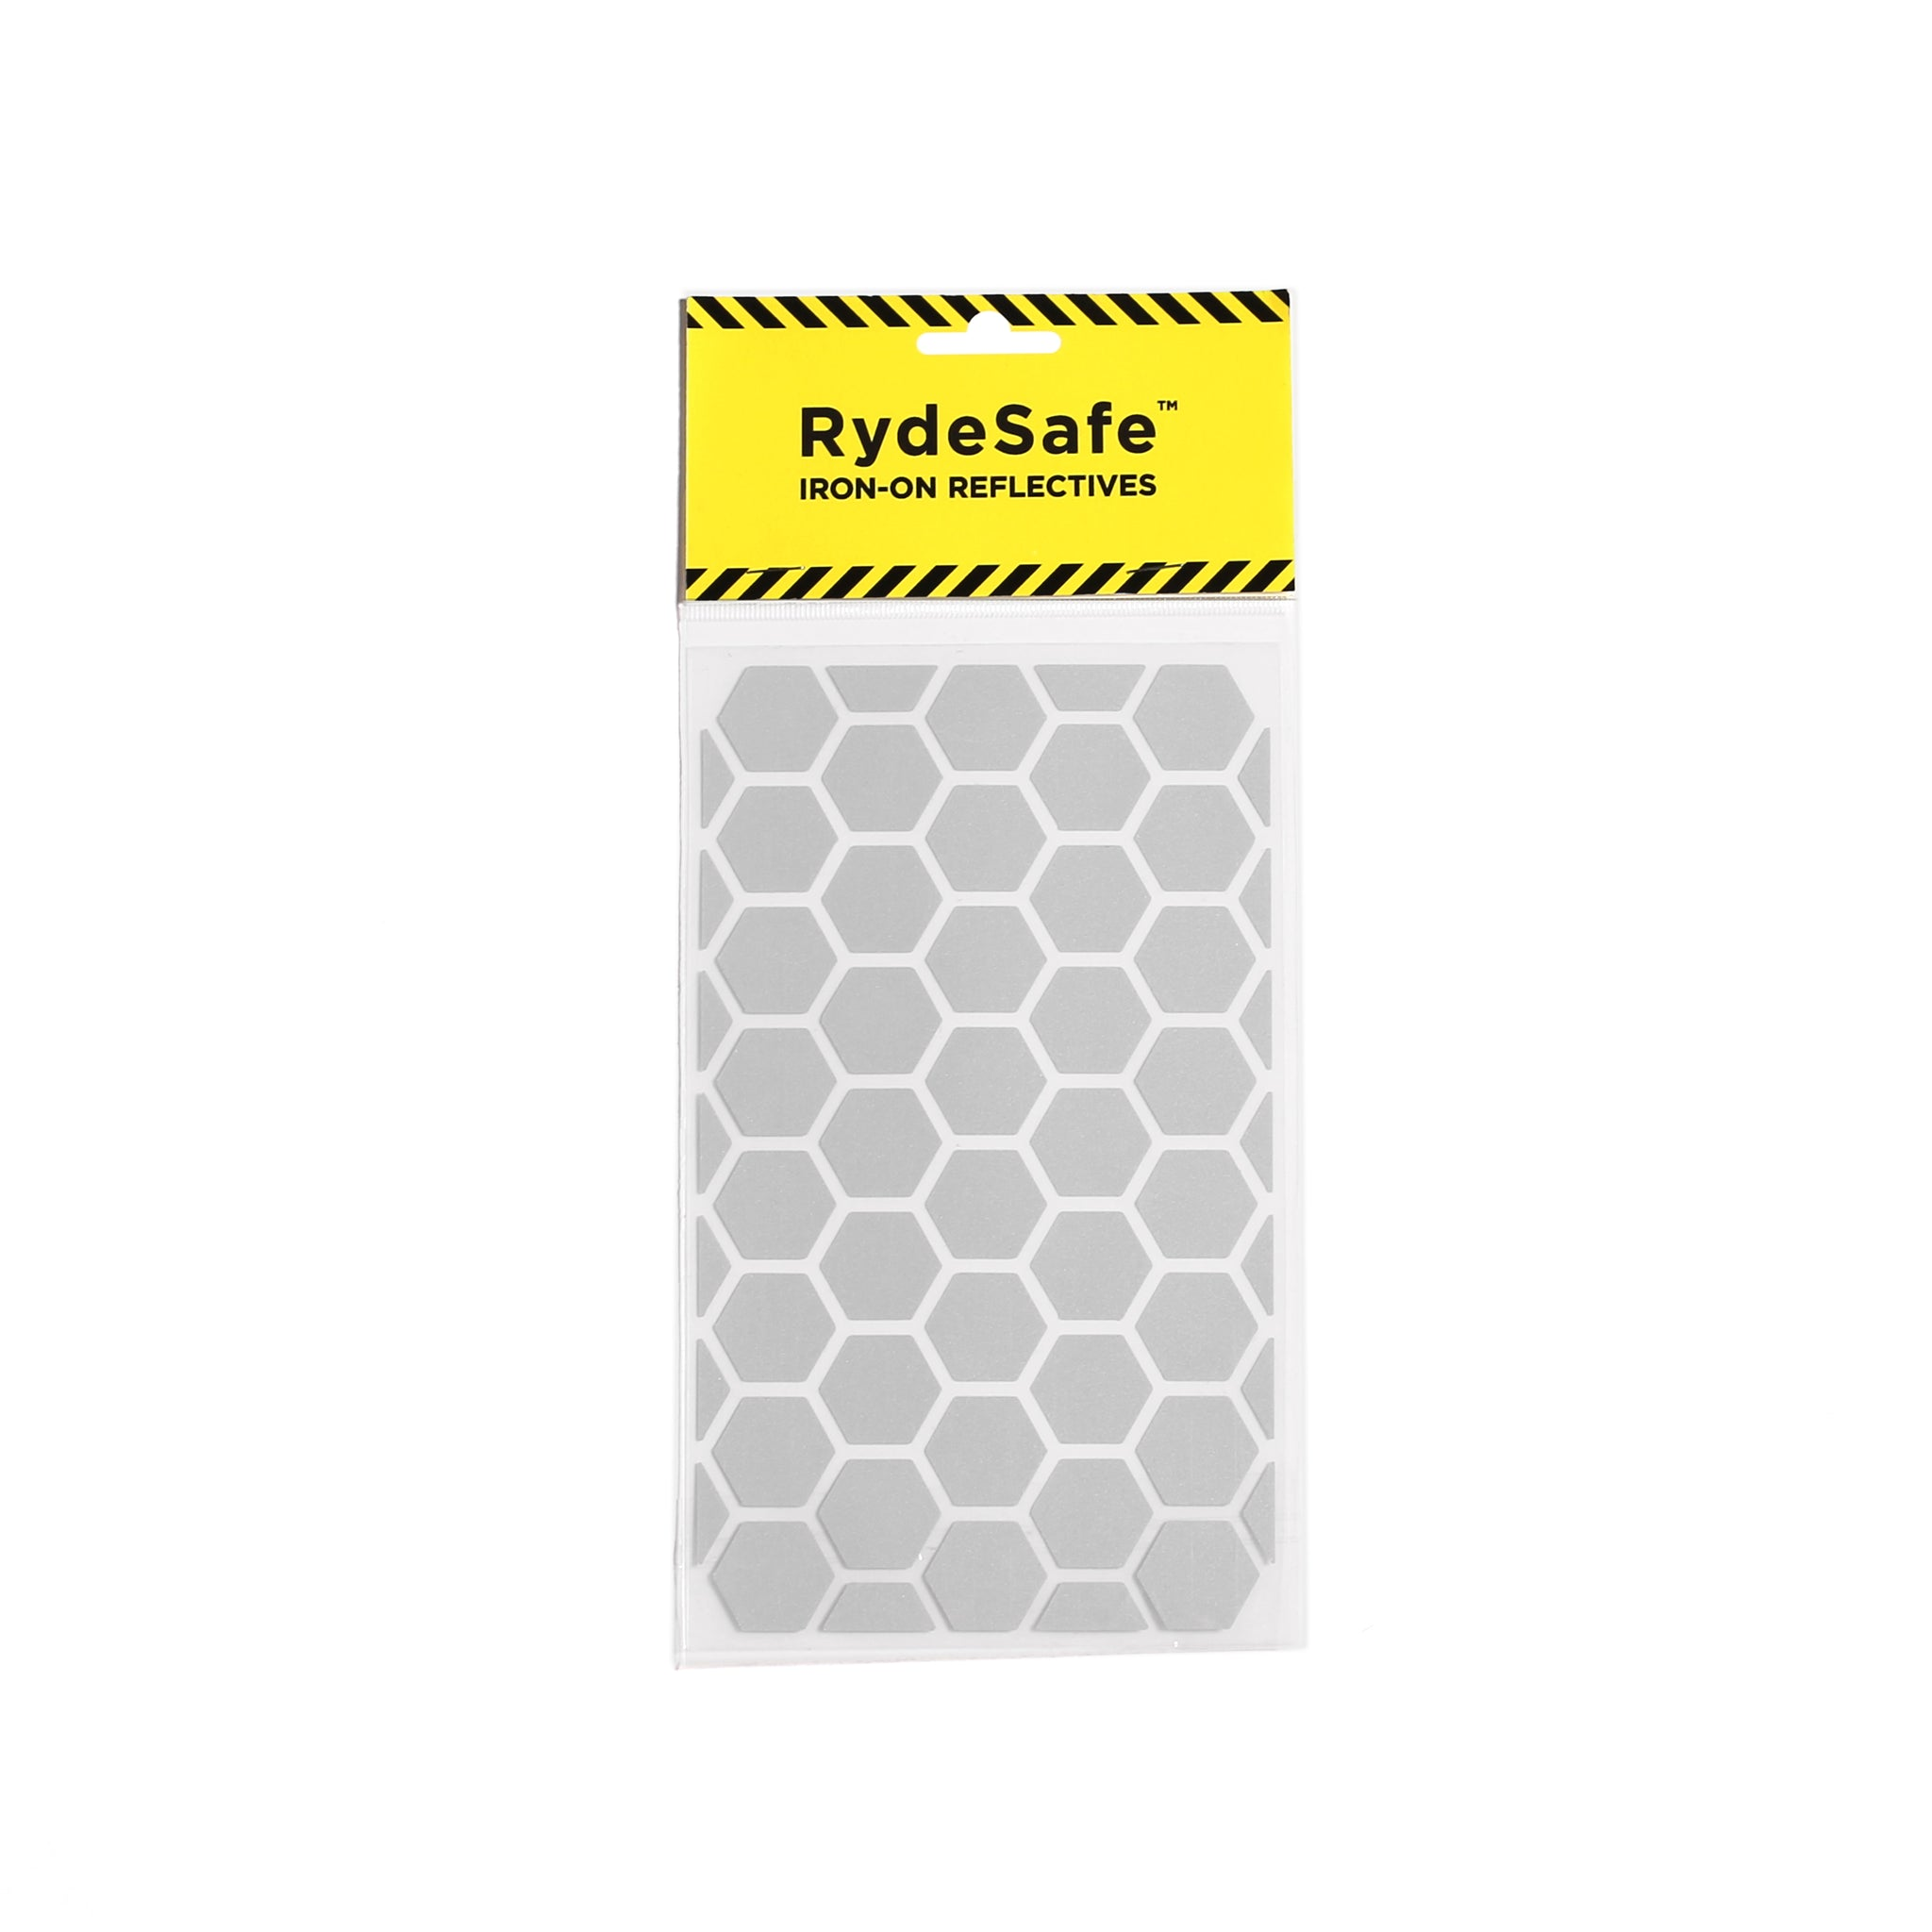 RydeSafe Reflective Iron-On Decals, hexagons, made with 3m reflective tape